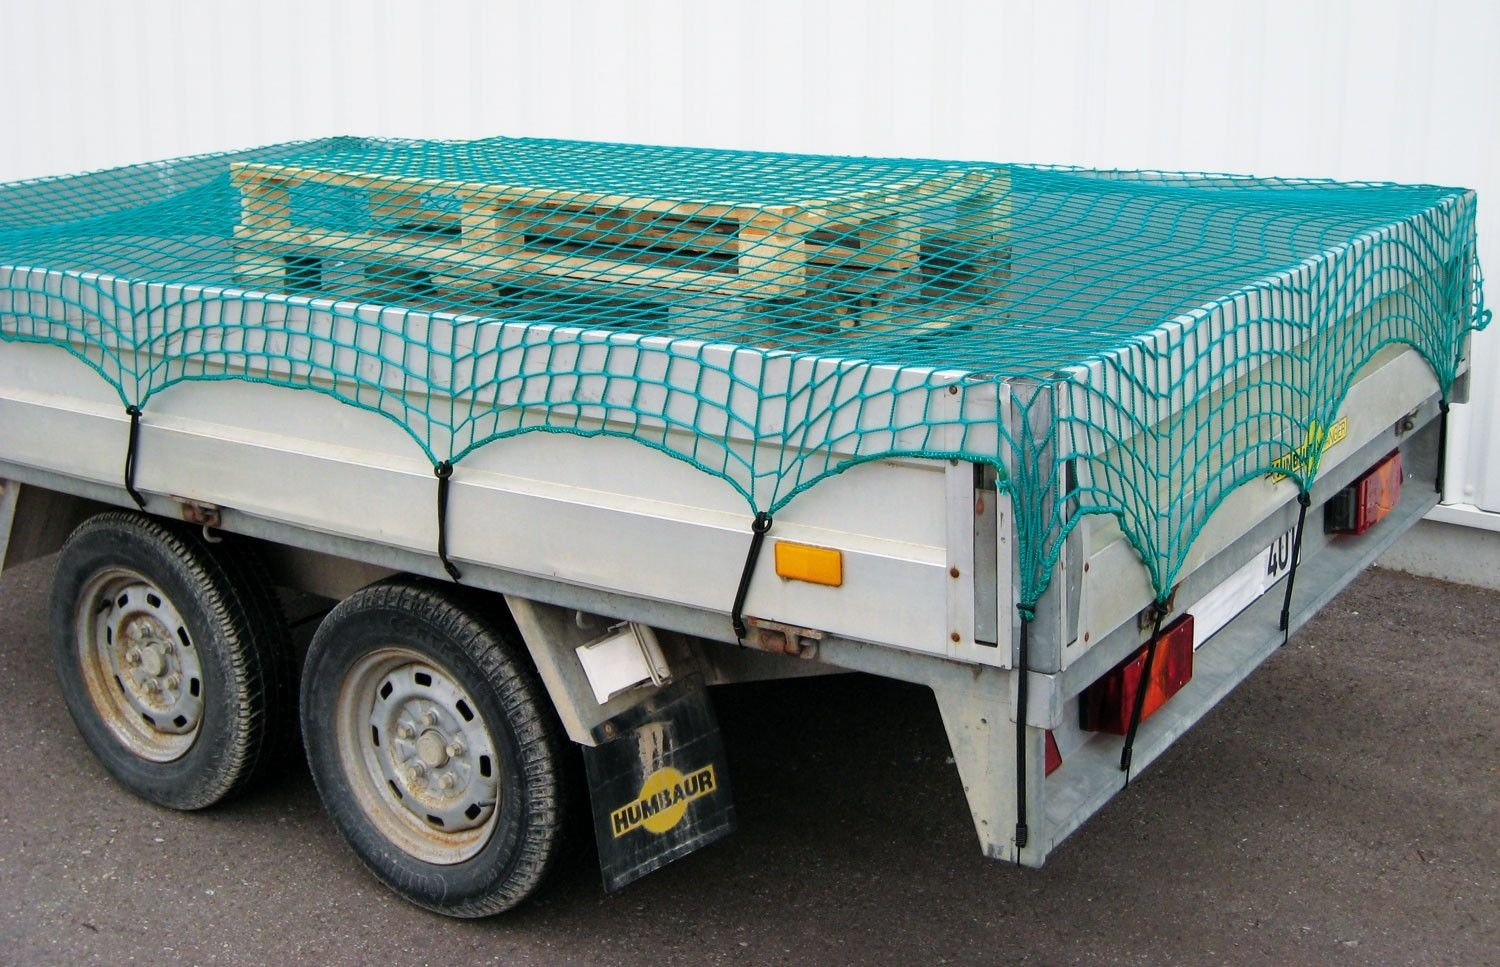 Fray-Resistant Heavy Duty Knotless Bungee Trailer & Truck Cargo Net - Various Sizes - 3.5m x 5.0m (11'4' x 16'4') Horizont